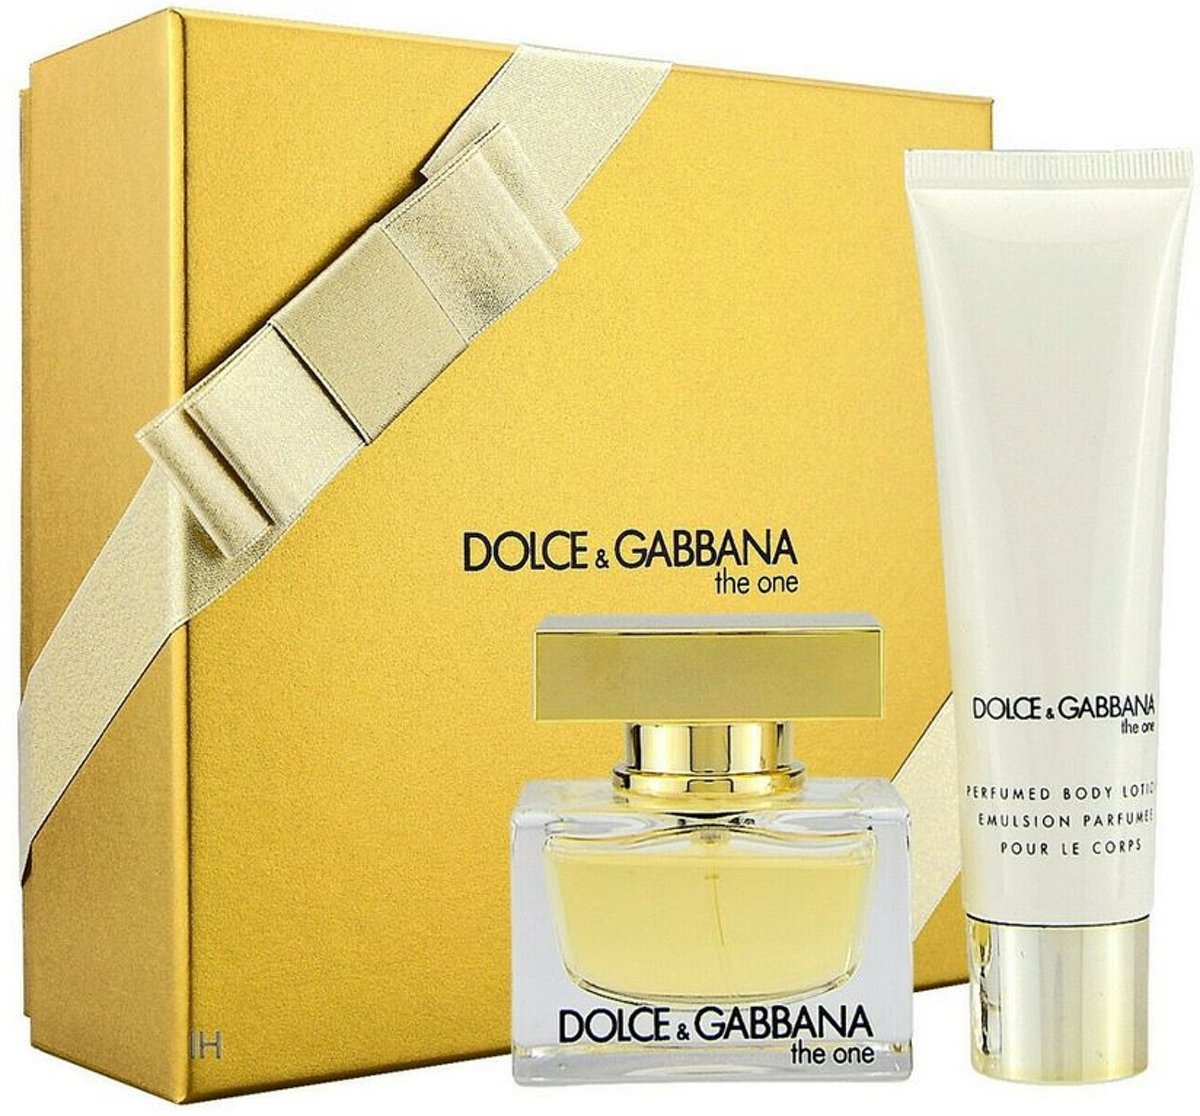 Dolce & Gabbana the One - Geschenkset - Eau de parfum + bodylotion 50 ml